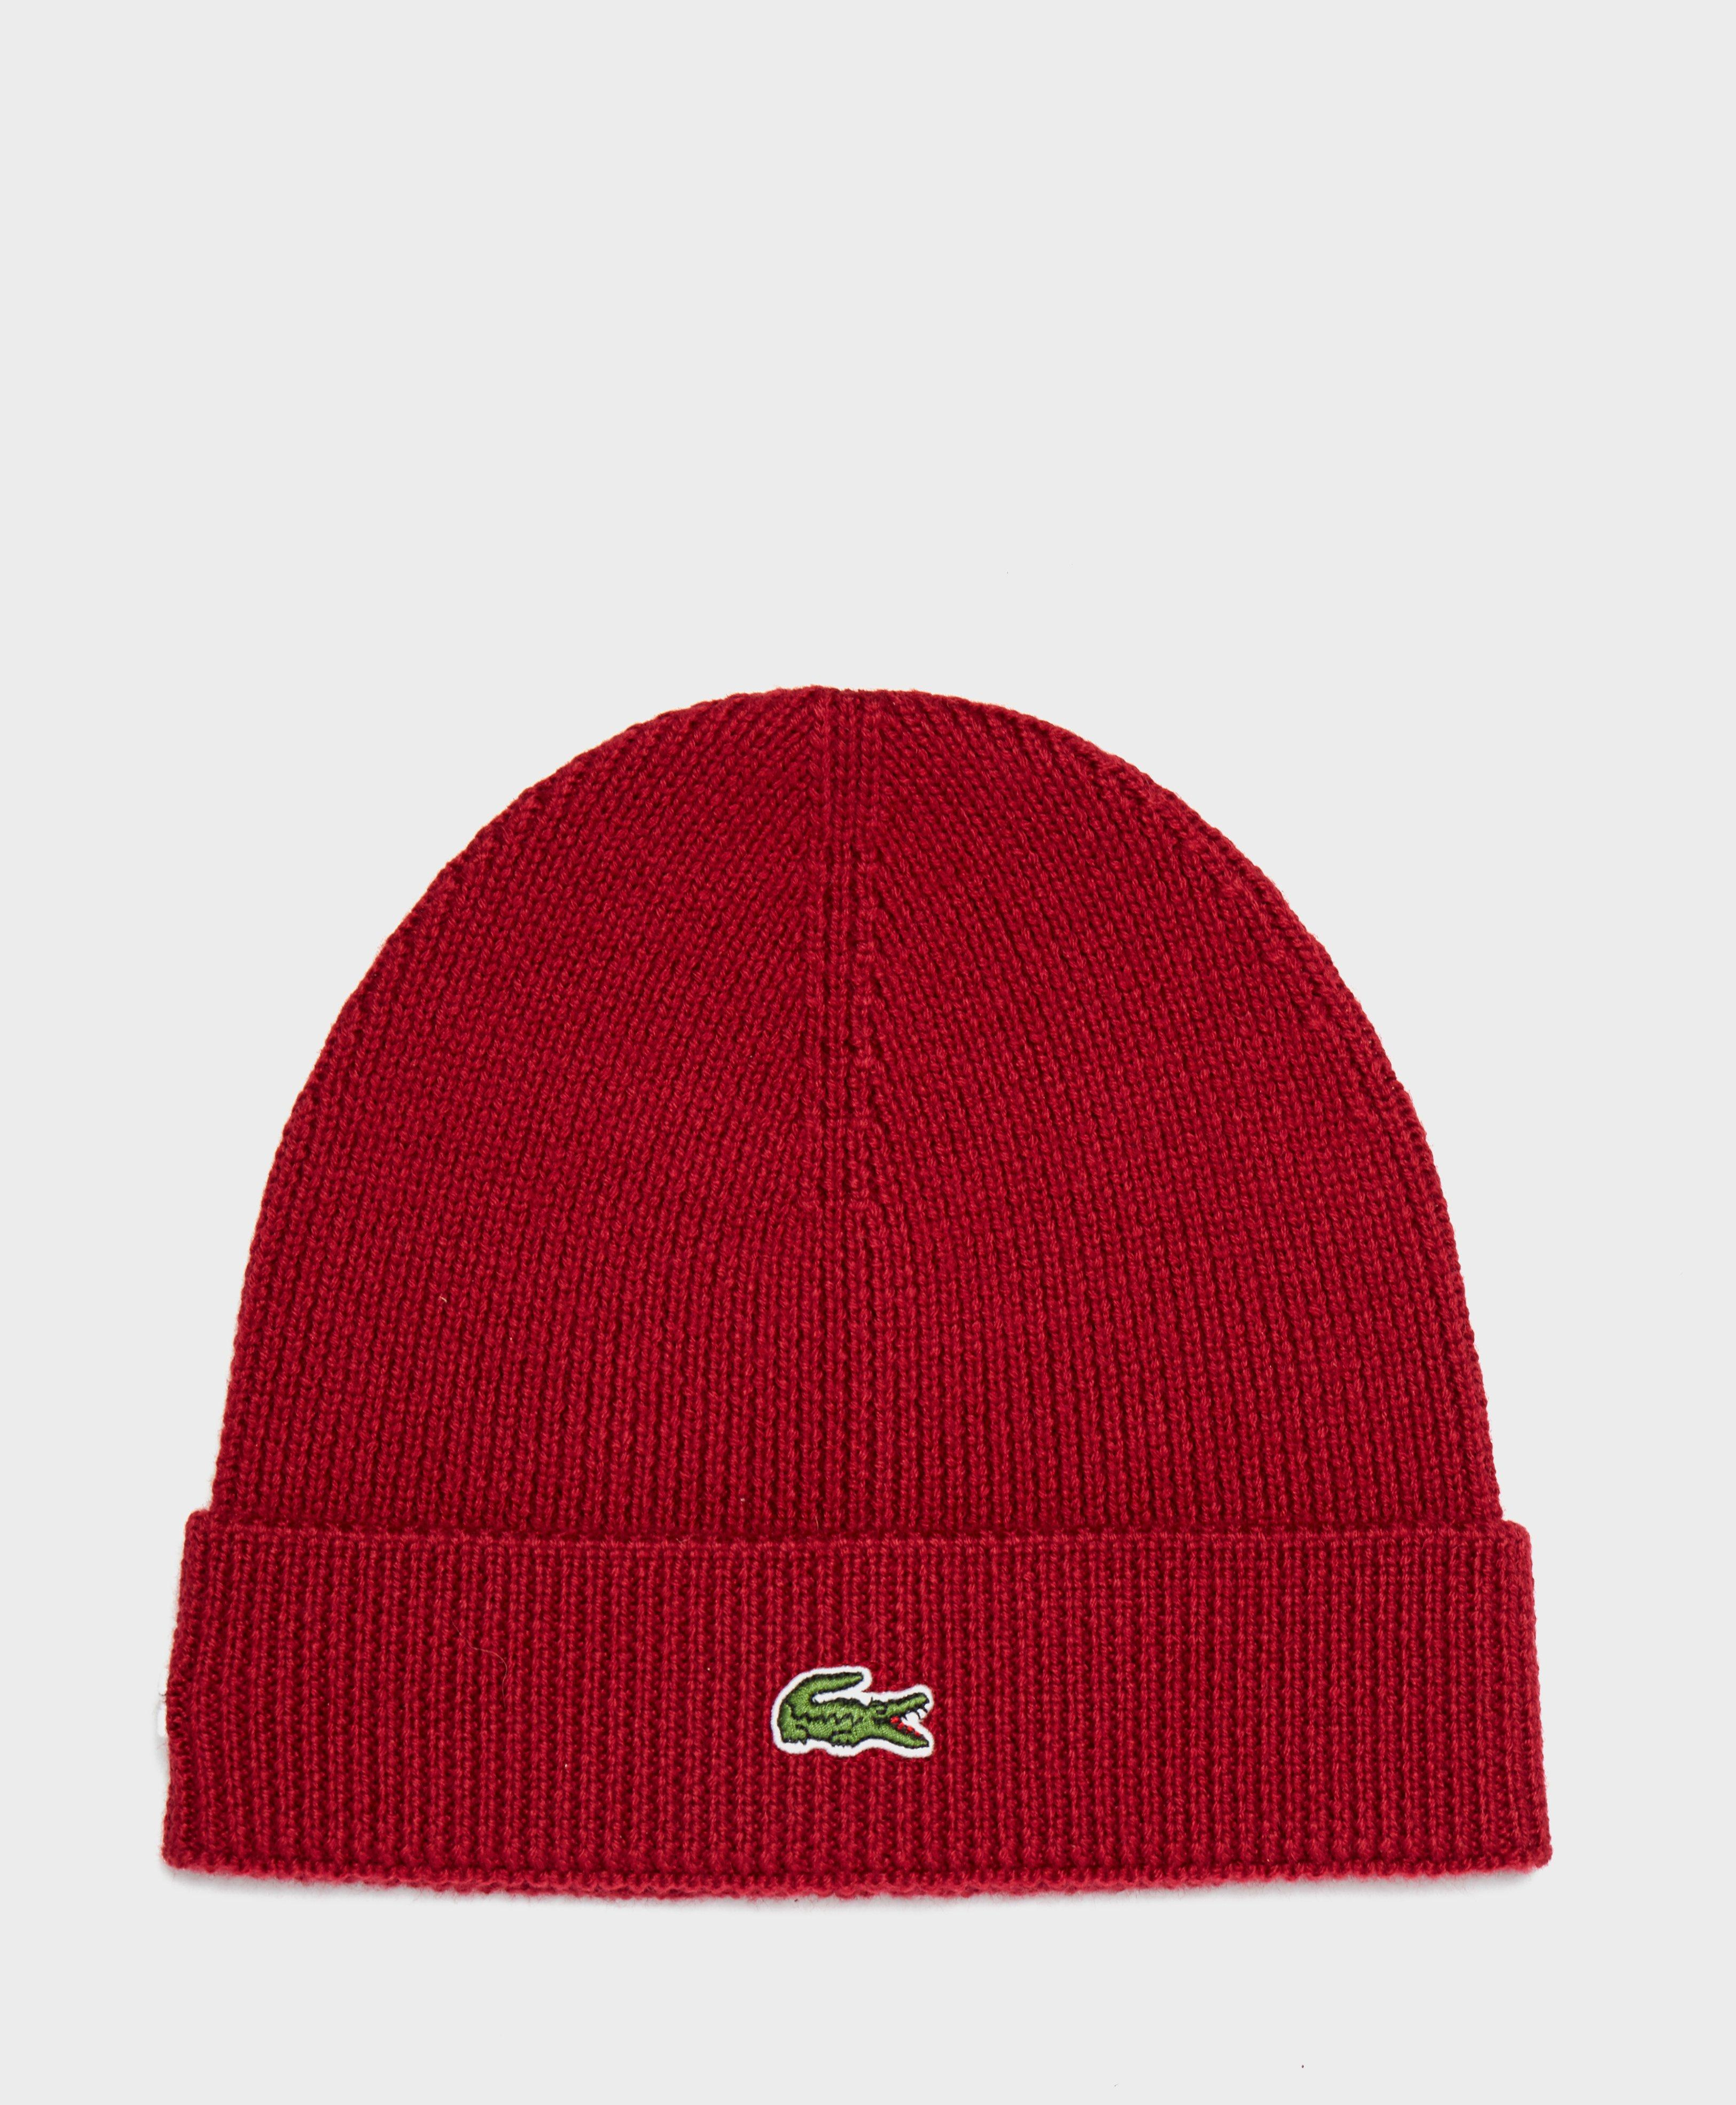 Lyst - Lacoste Ribbed Beanie in Red for Men 38febf5341b8